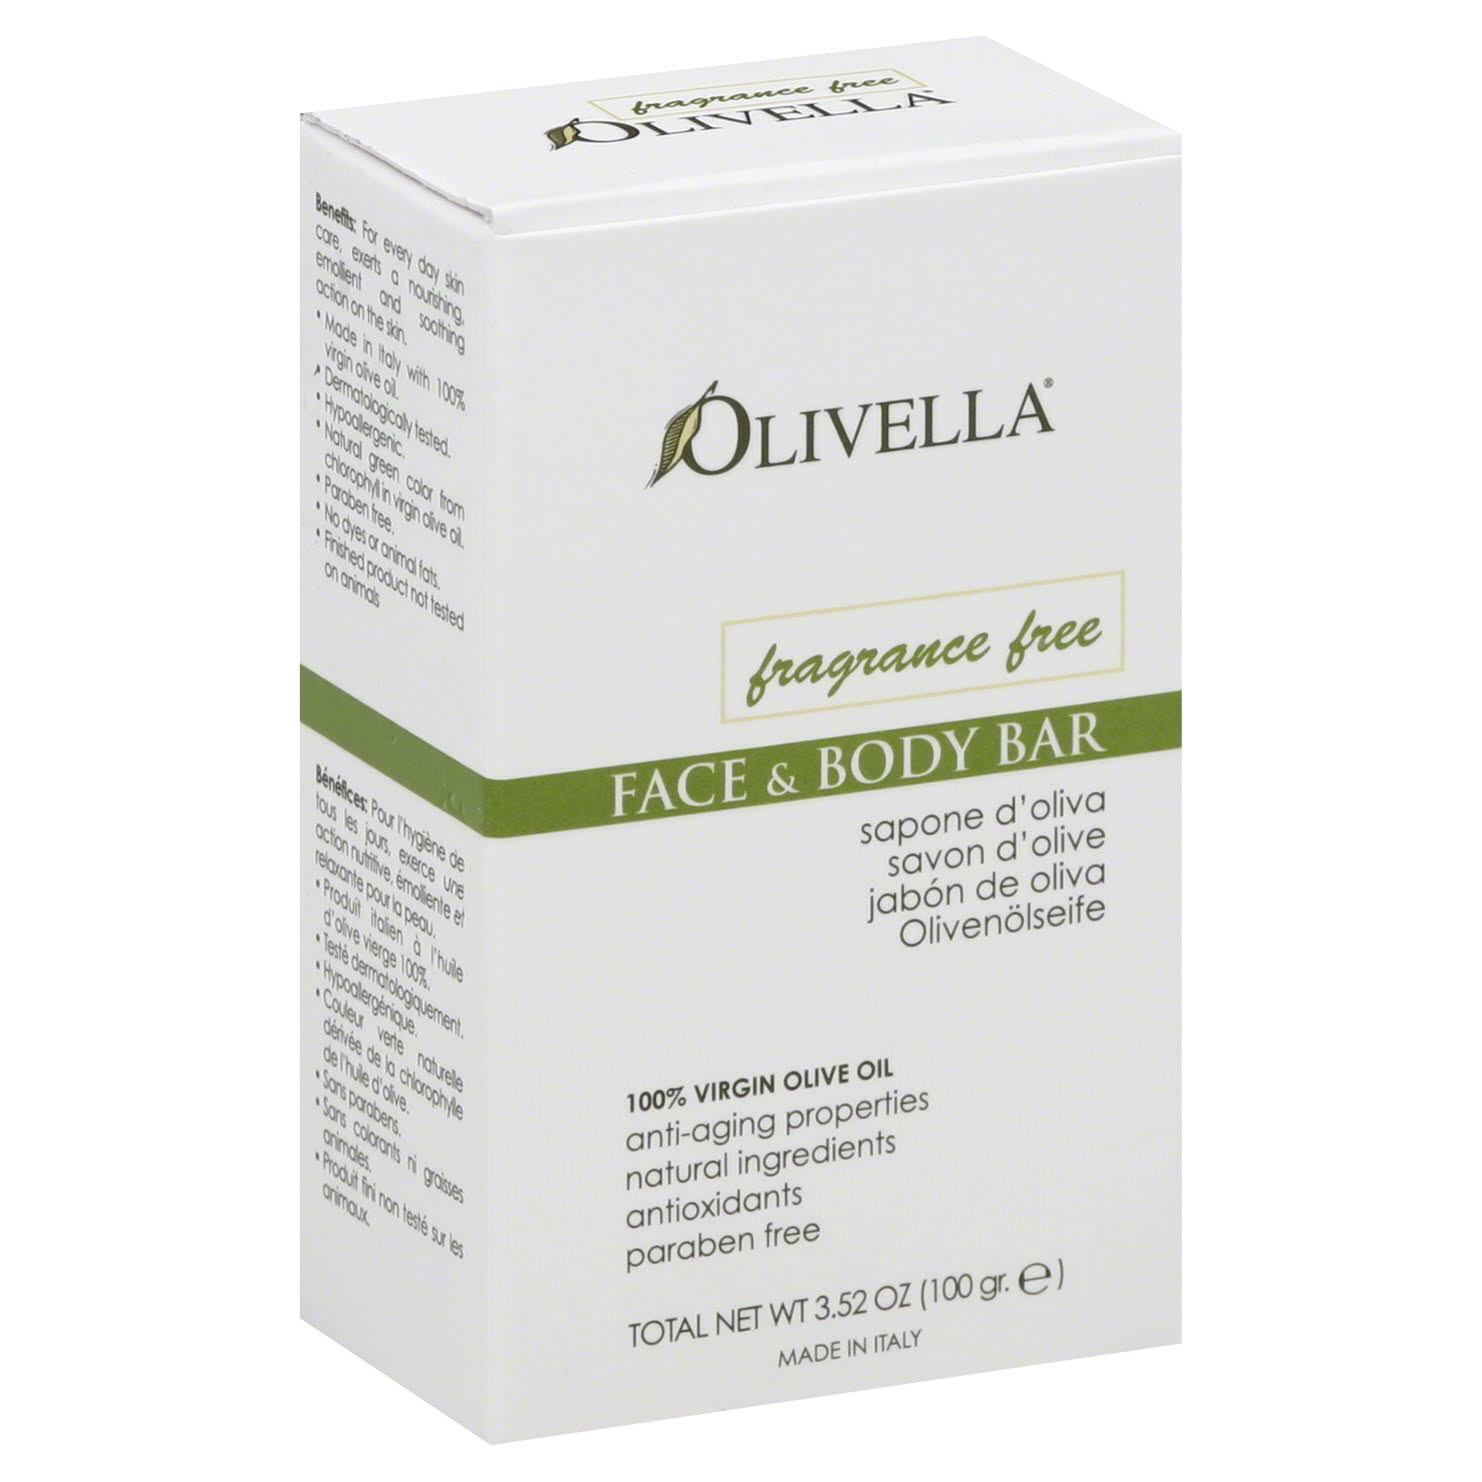 Olivella Face and Body Soap - Fragrance Free, 3.52oz